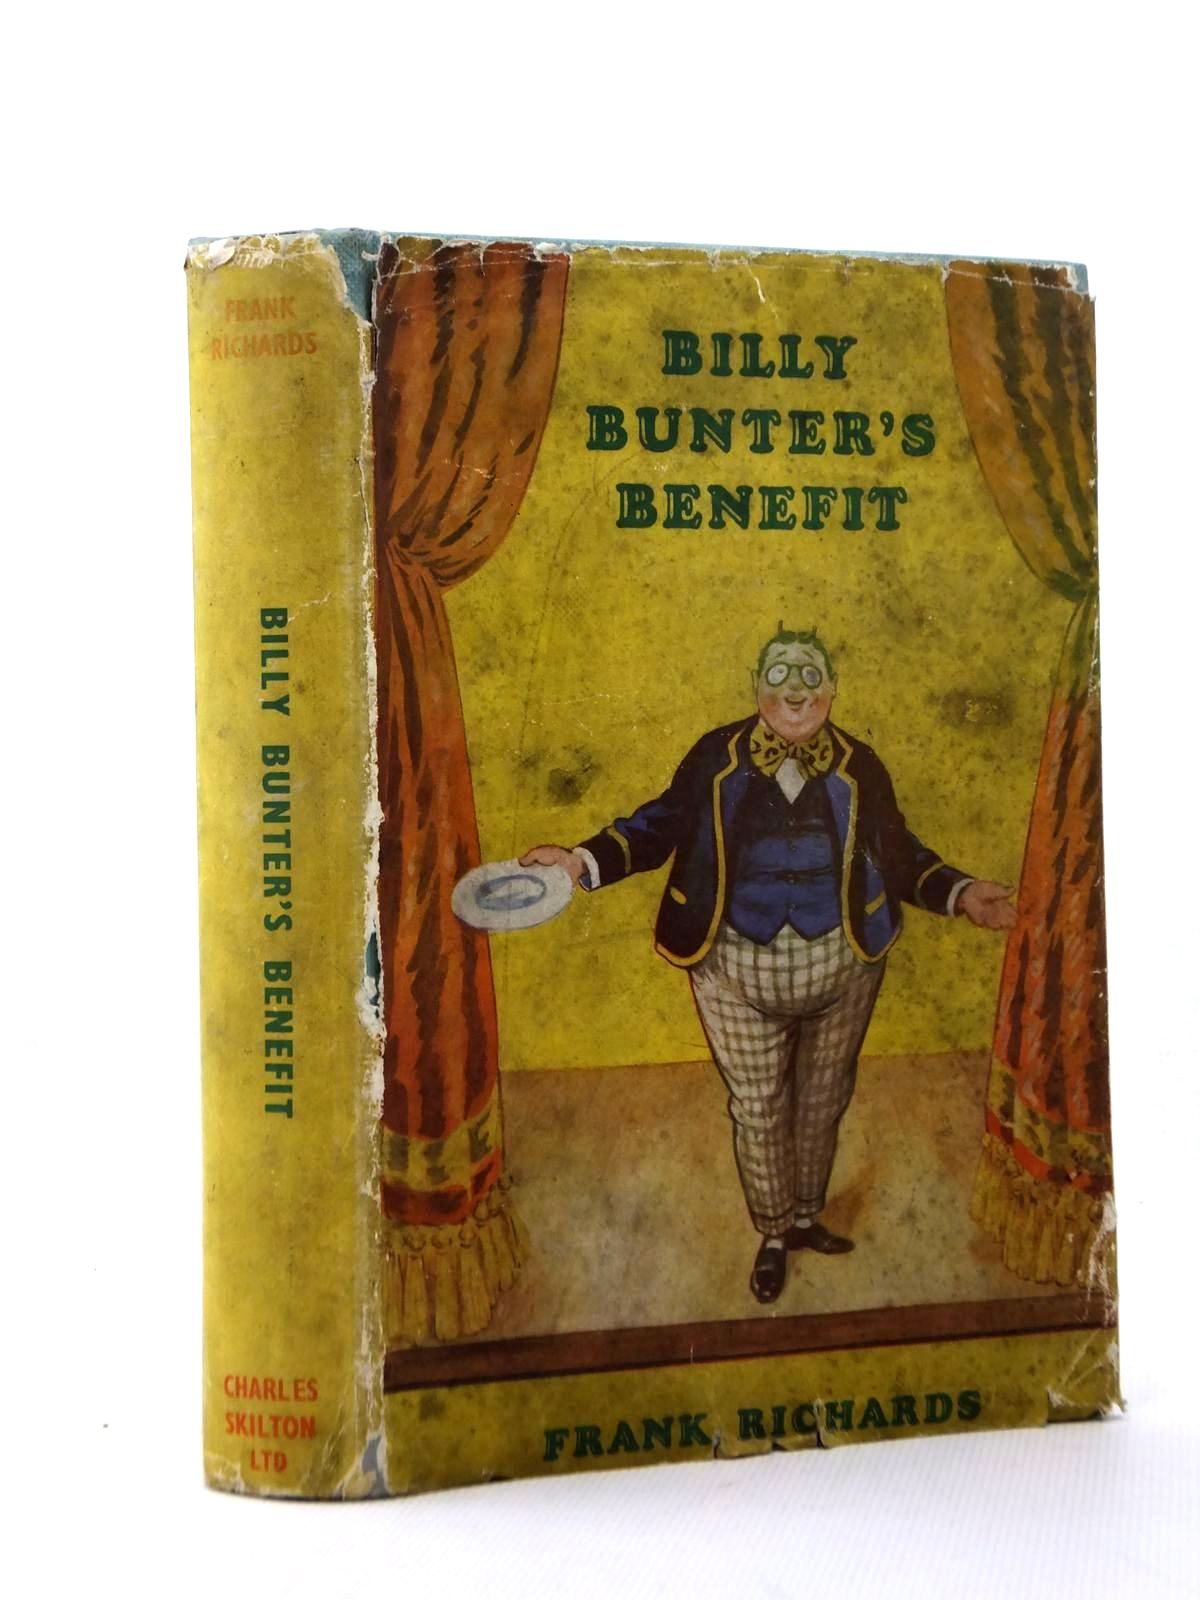 Cover of BILLY BUNTER'S BENEFIT by Frank Richards